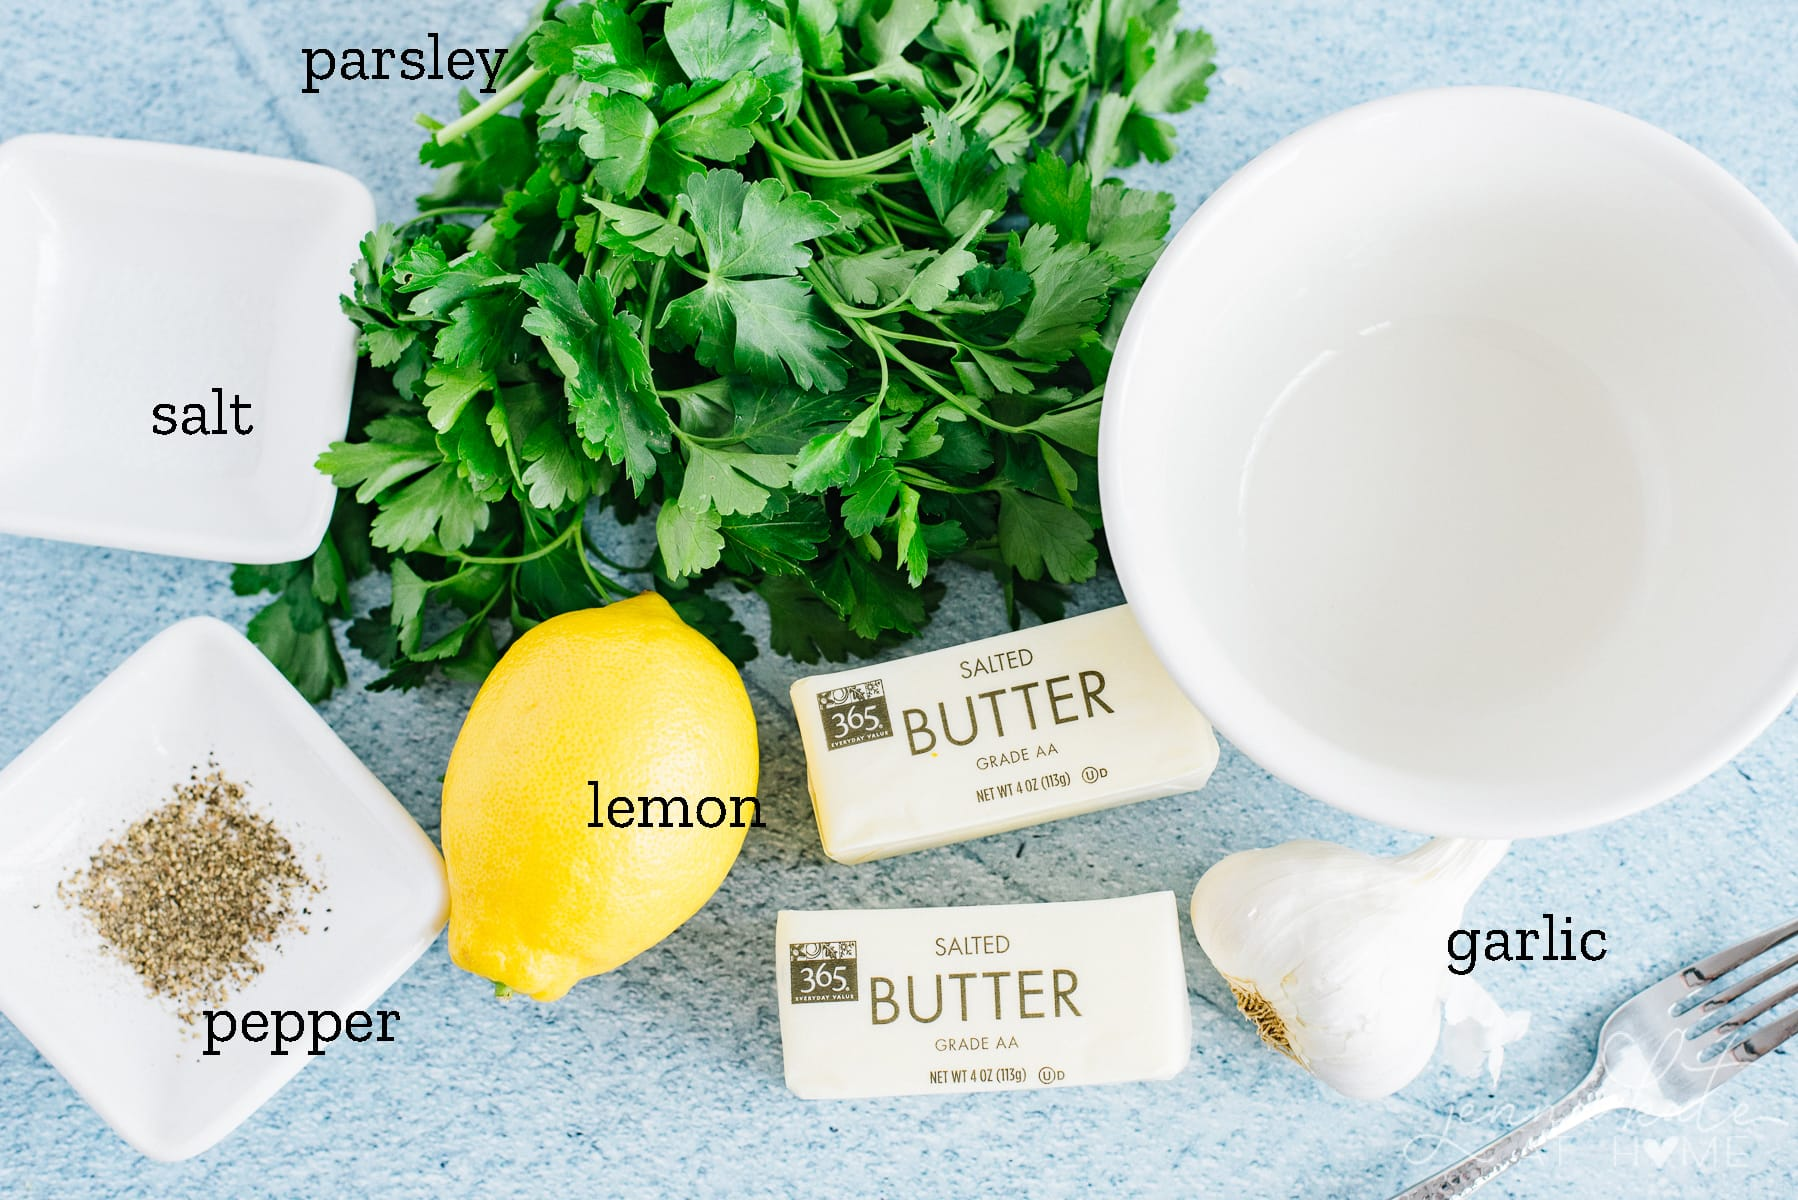 ingredients for the garlic herb butter